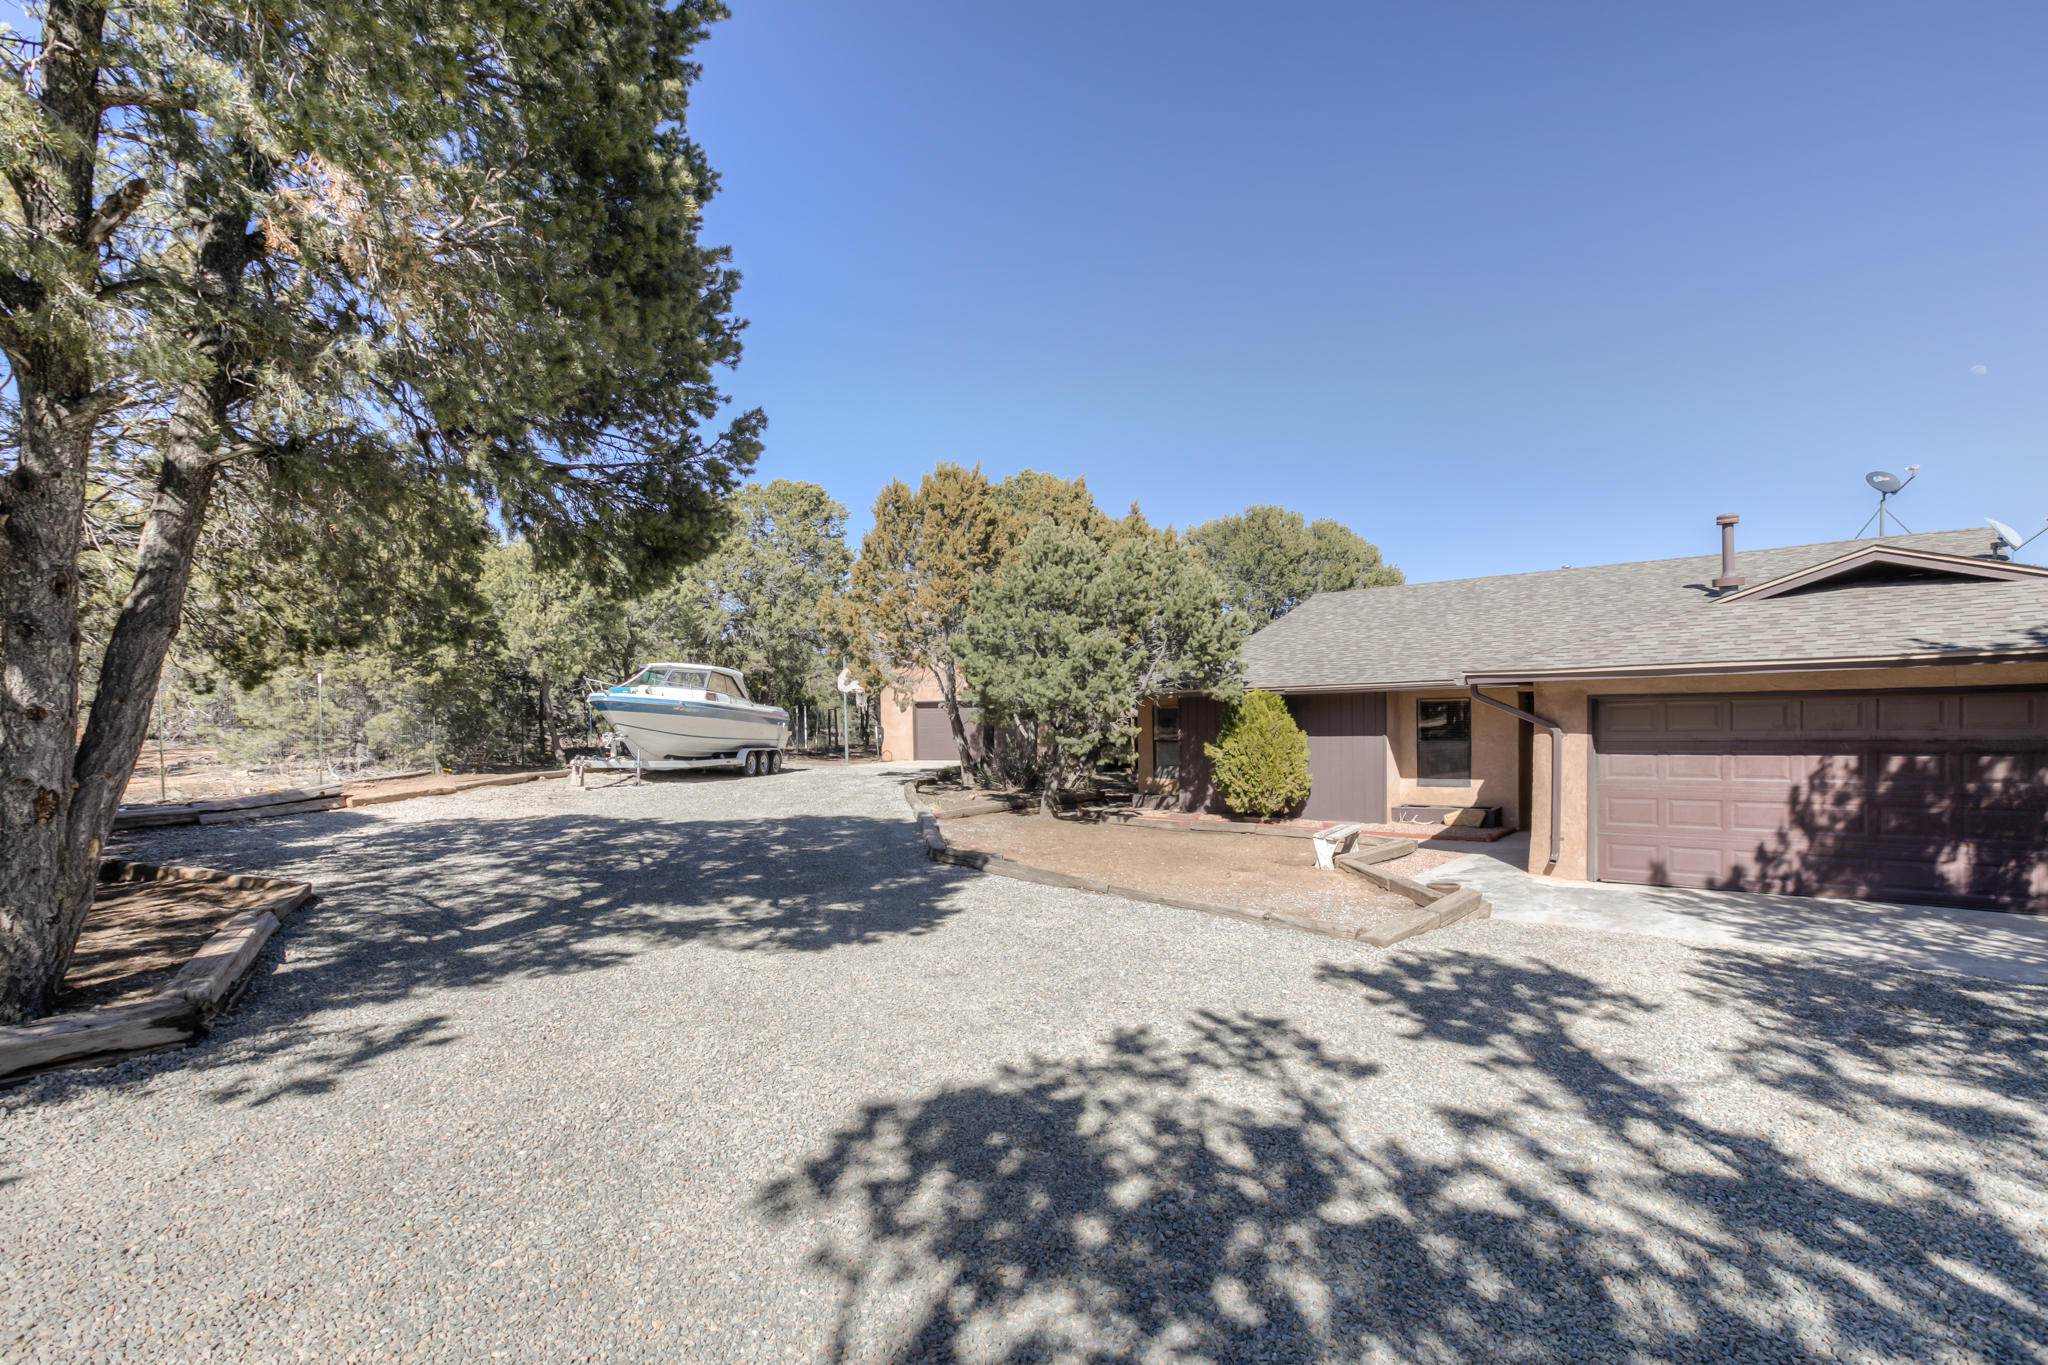 12 FUTURITY Place Property Photo - Tijeras, NM real estate listing